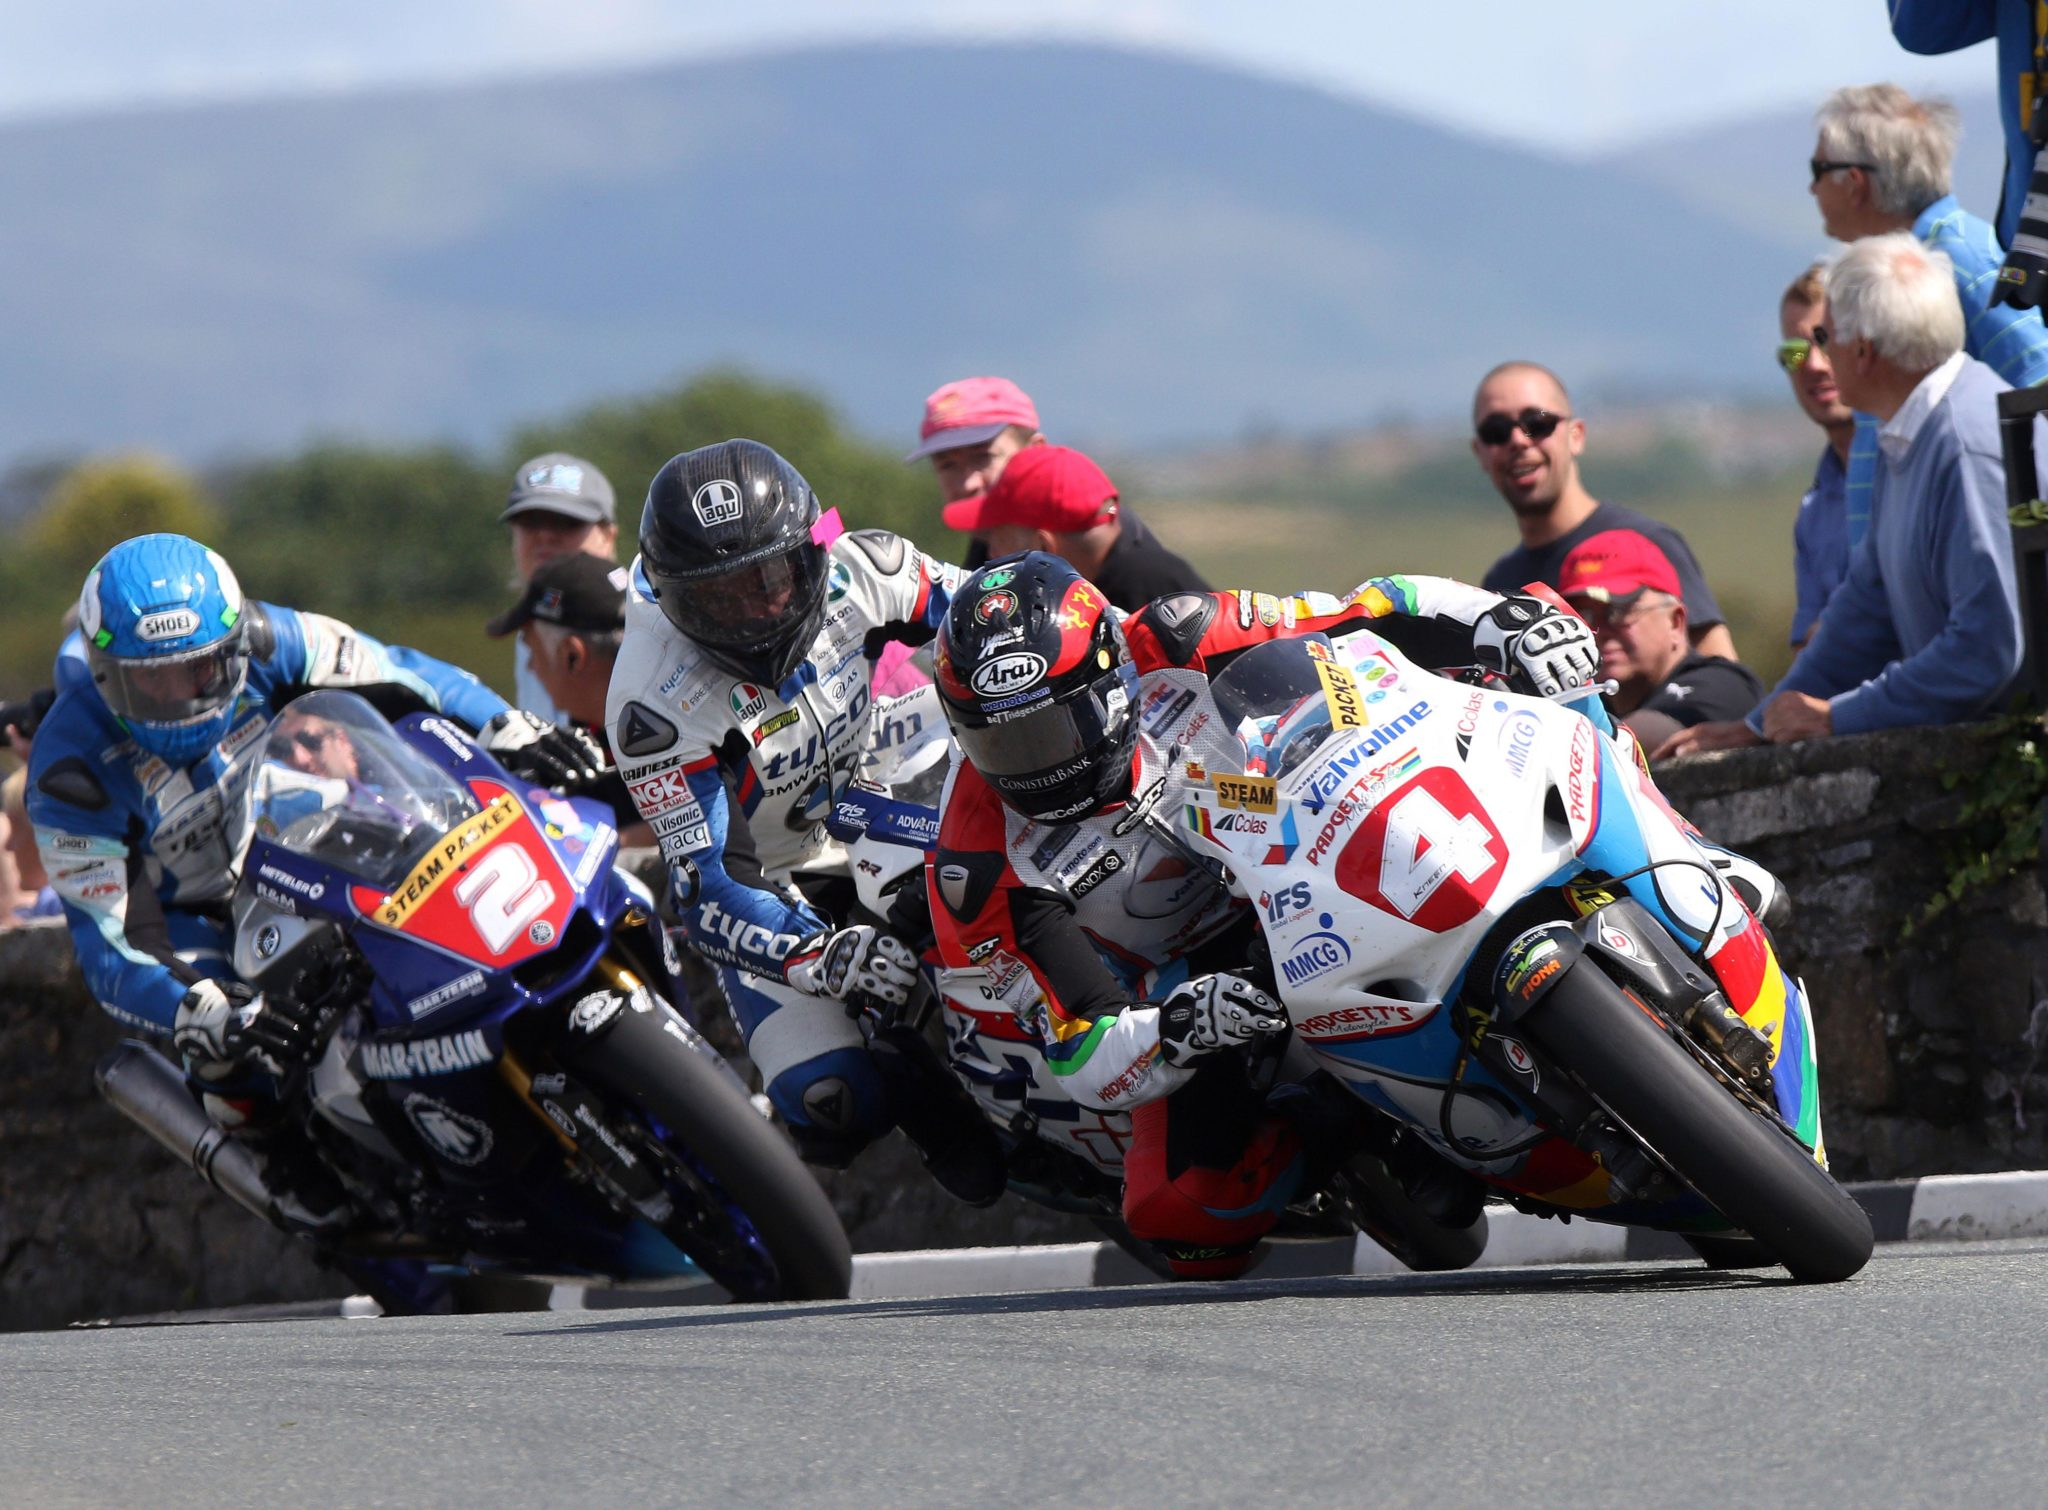 Dan Kneen, Guy Martin and Dean Harrison